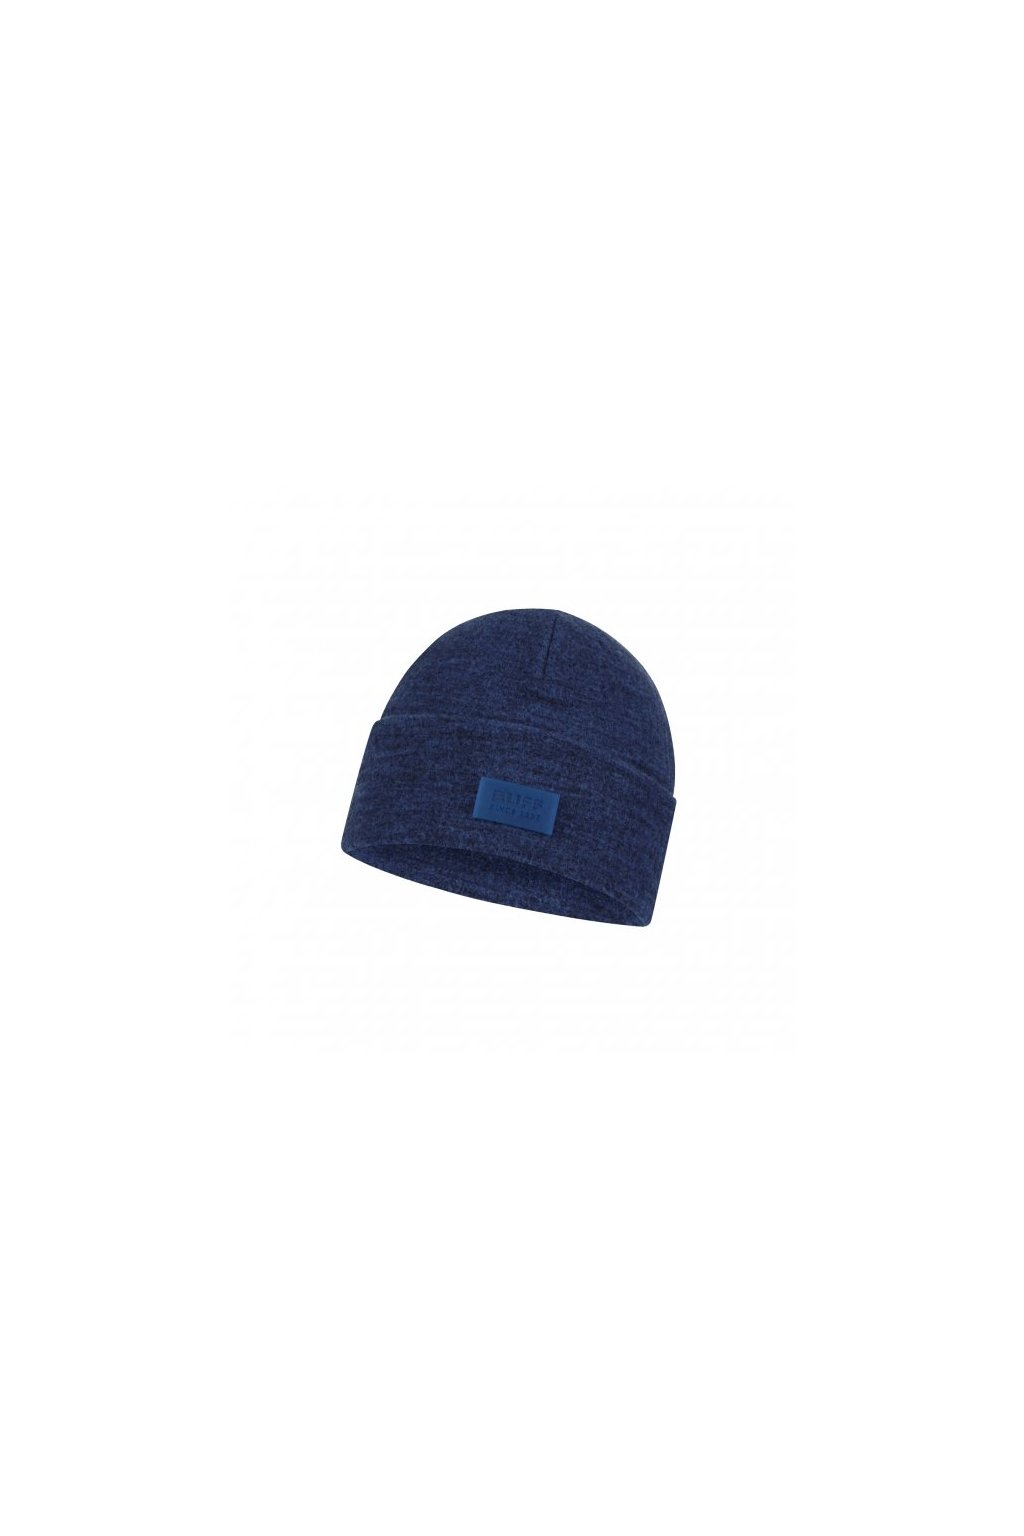 merino wool fleece hat buff olympian blue 1241167601000